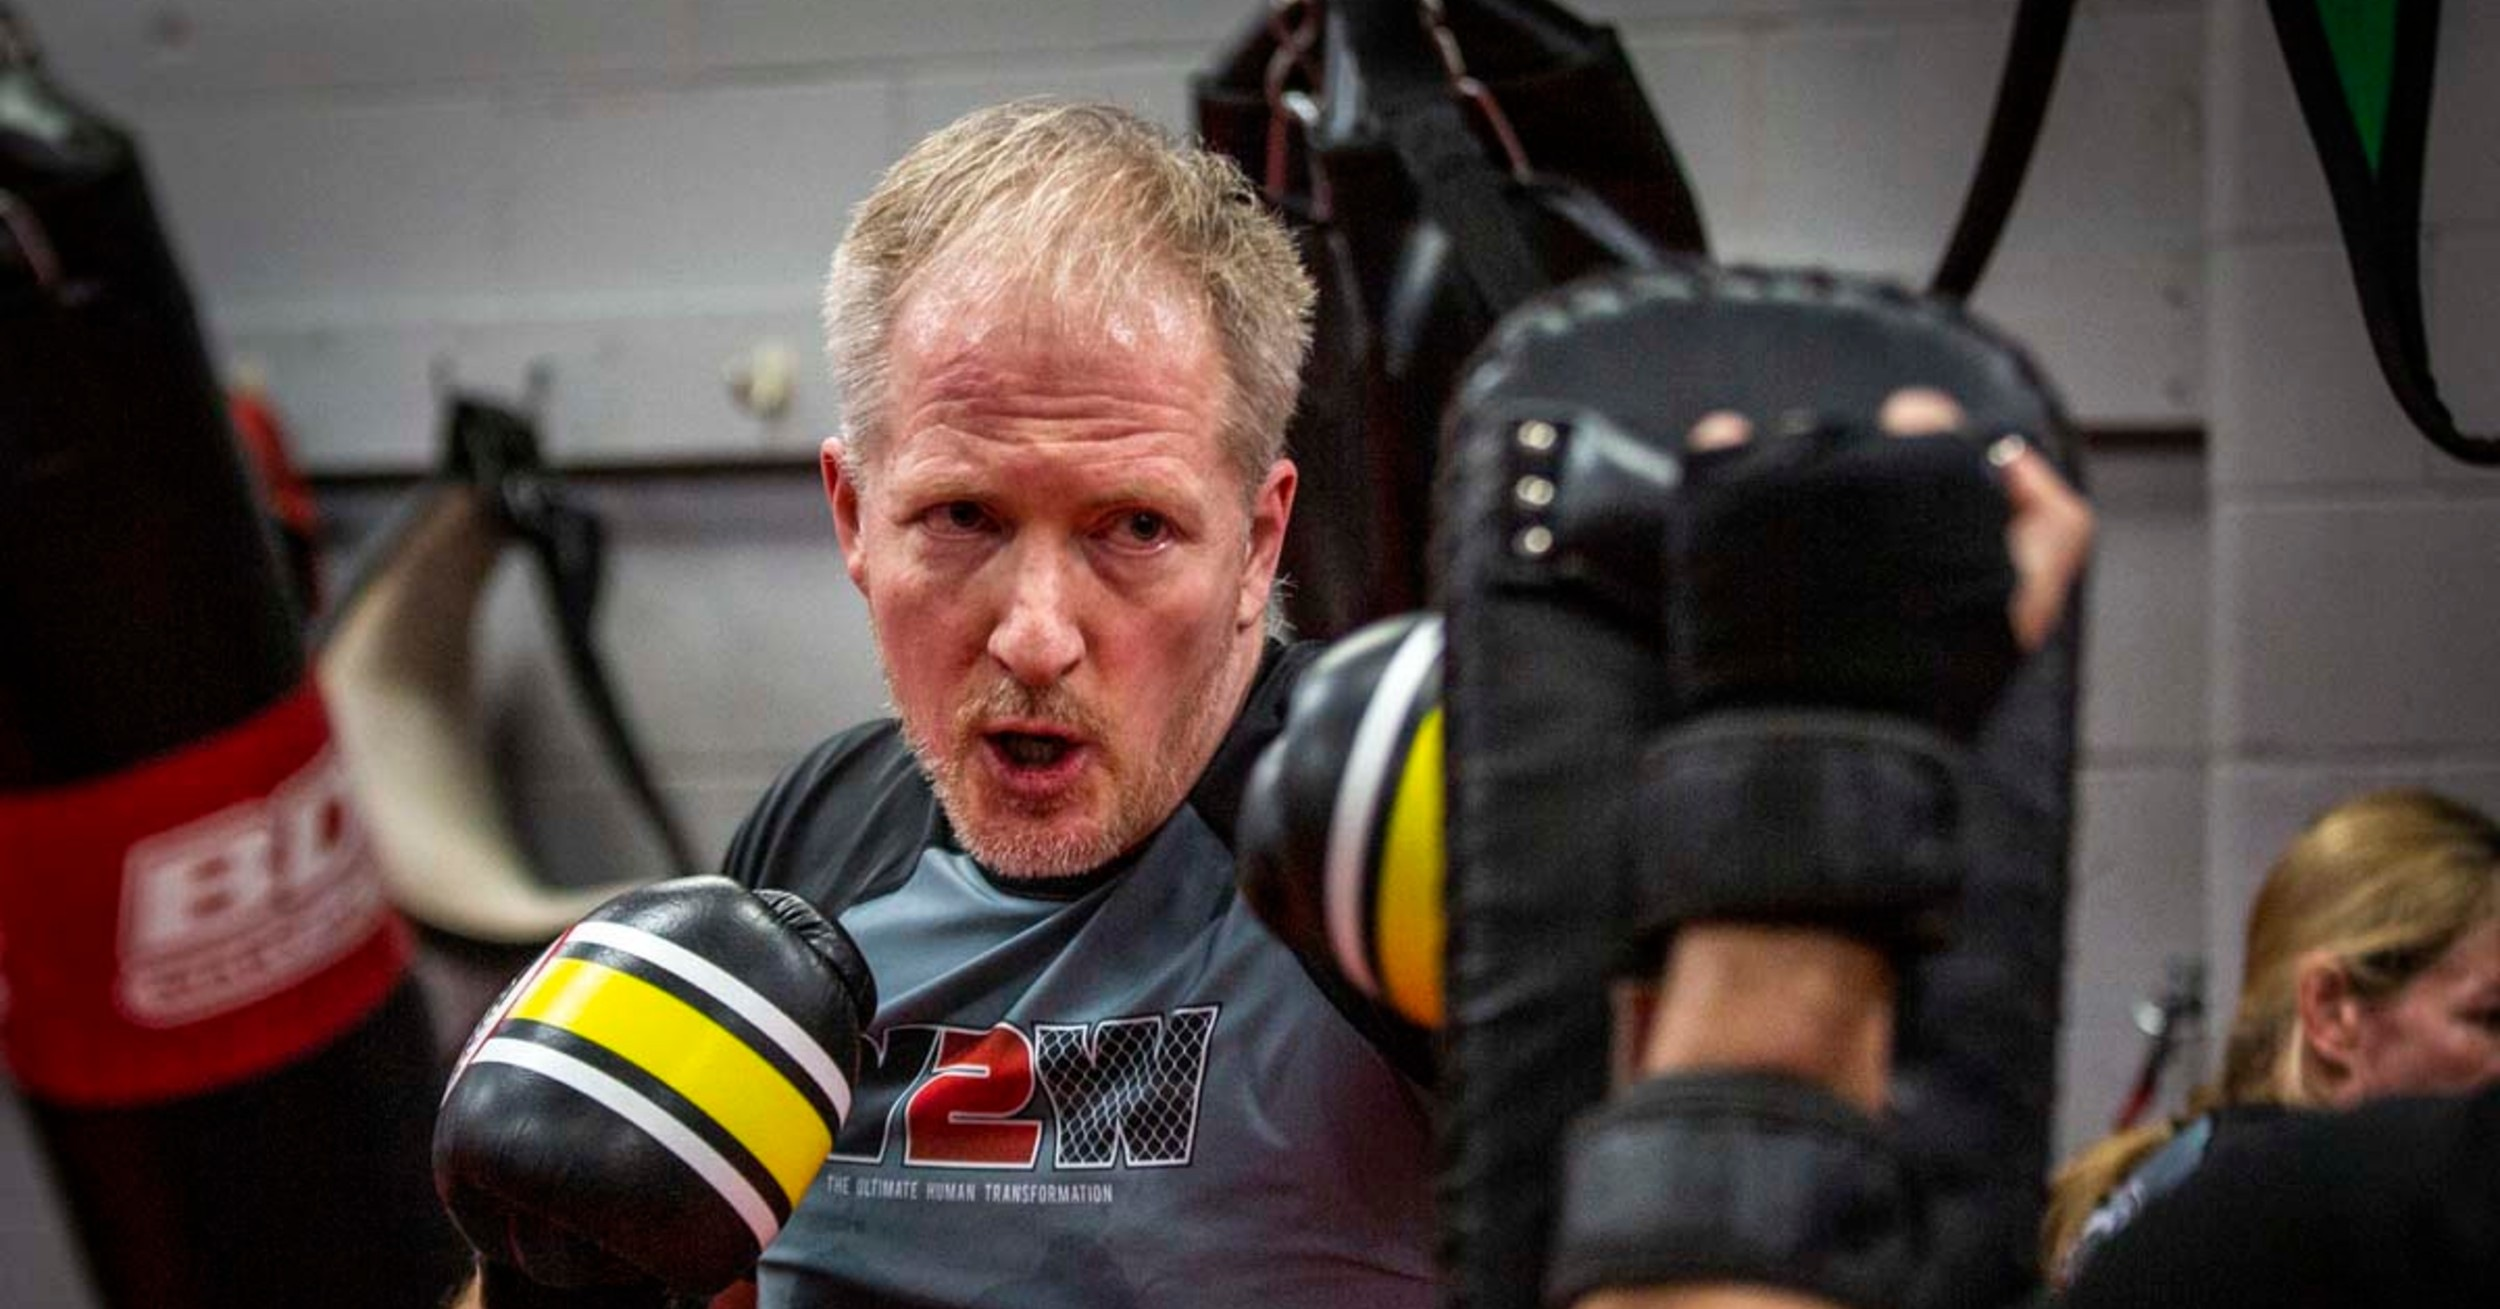 Meet Nick Debrey, A 46-Year-Old Teacher Who Conquered The Cage